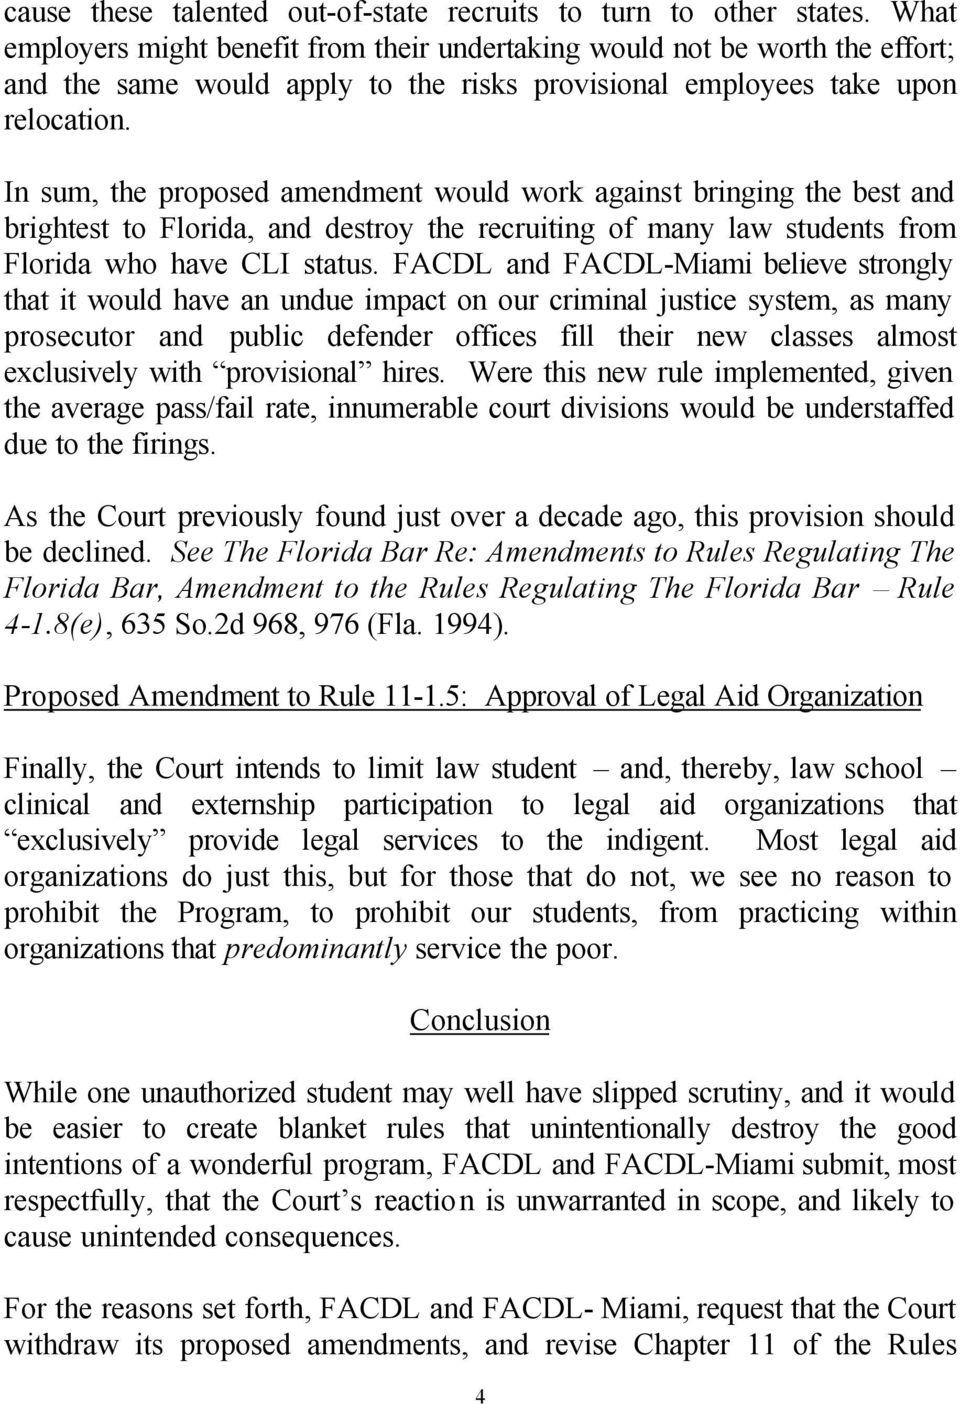 In sum, the proposed amendment would work against bringing the best and brightest to Florida, and destroy the recruiting of many law students from Florida who have CLI status.